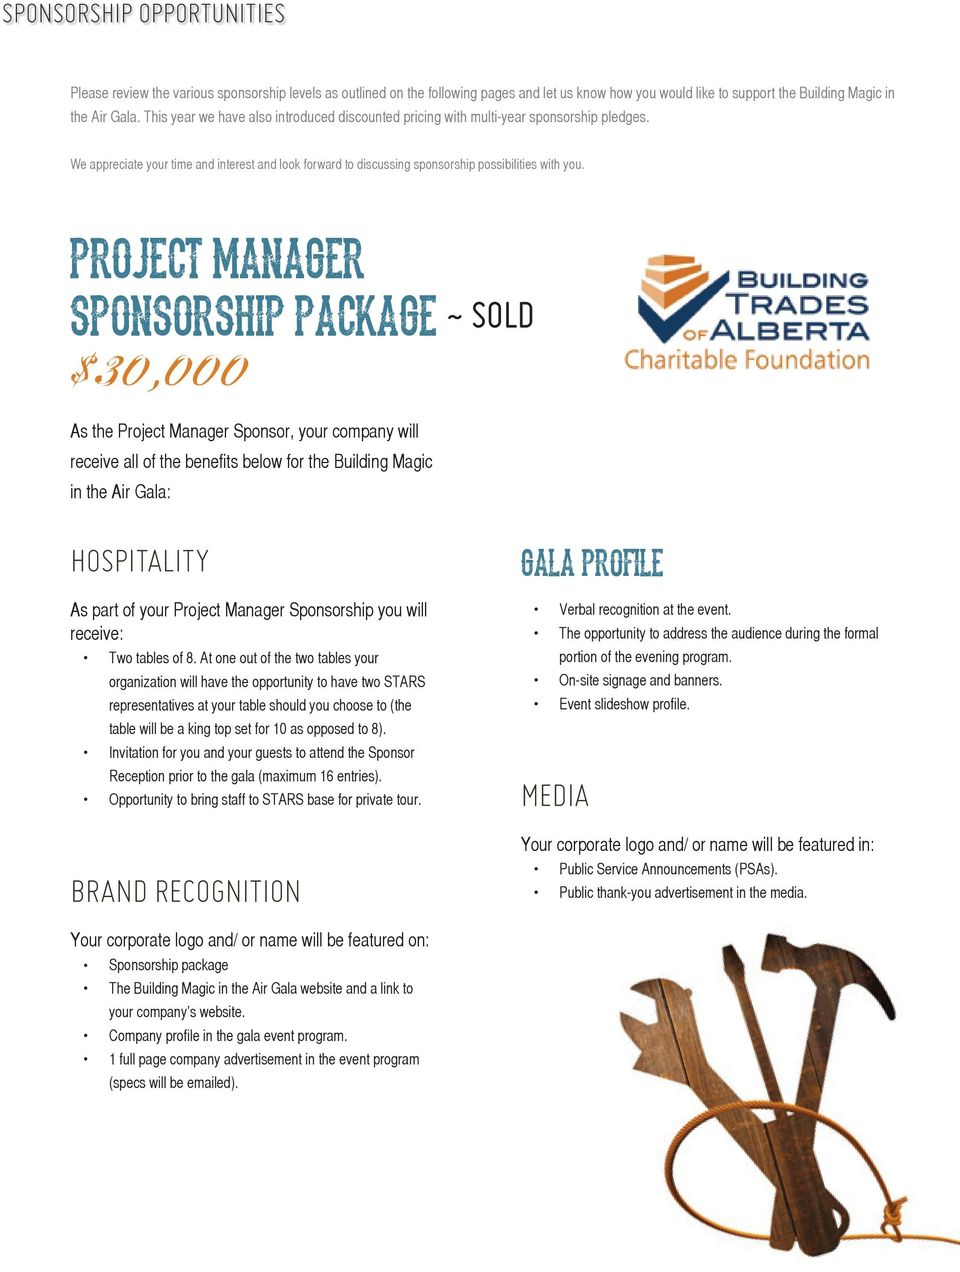 PROJECT MANAGER SPONSORSHIP PACKAGE ~ SOLD $30,000 As the Project Manager Sponsor, your company will receive all of the benefits below for the Building Magic in the Air Gala: HOSPITALITY As part of